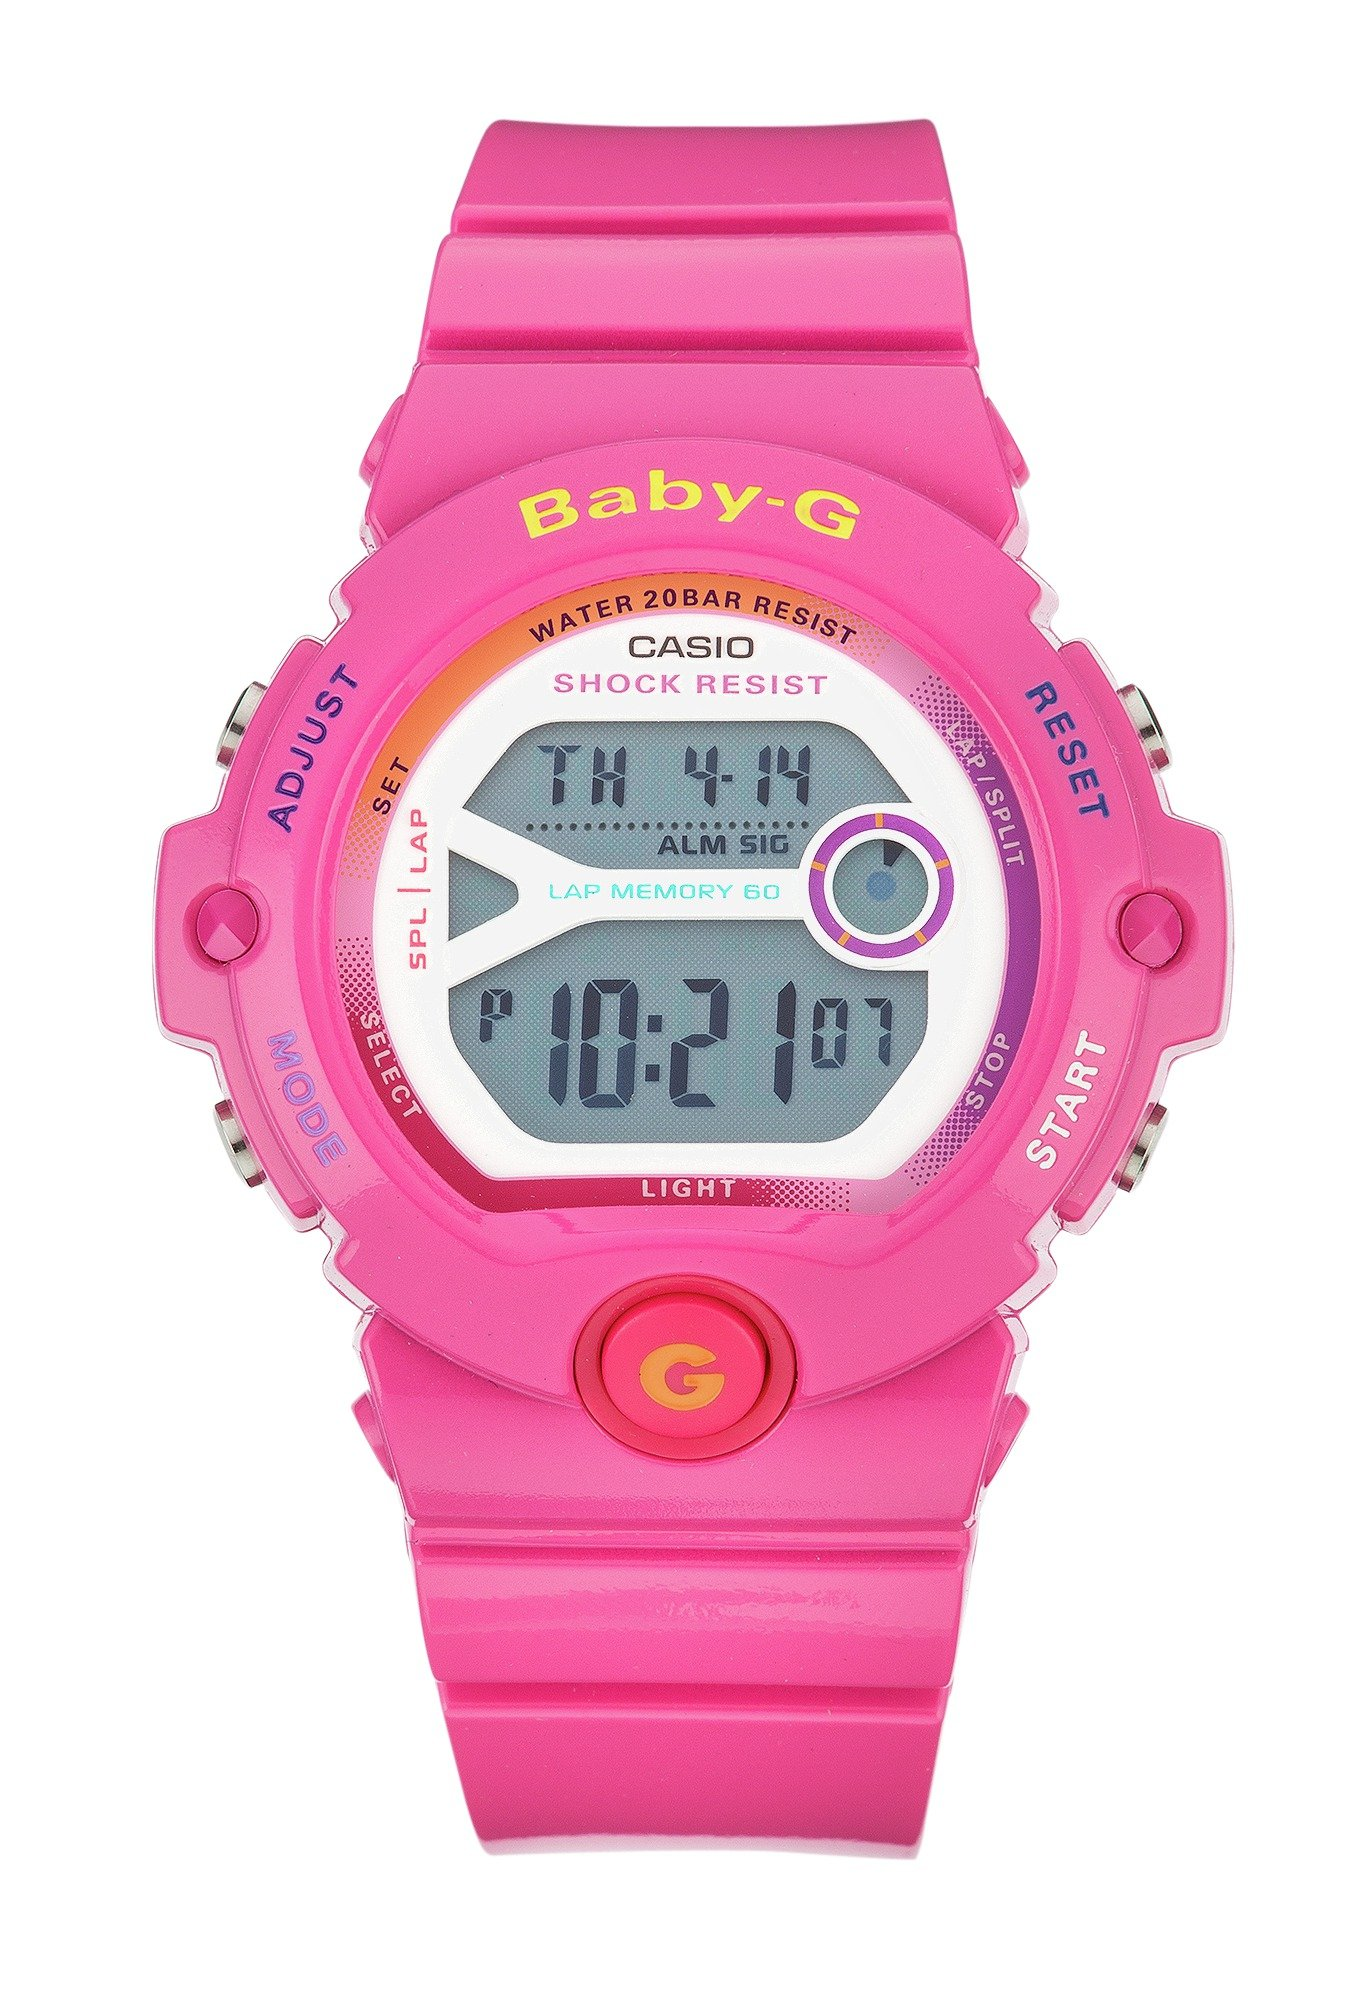 Image of Baby-G Ladies' Pink Digital Sports Strap Watch.